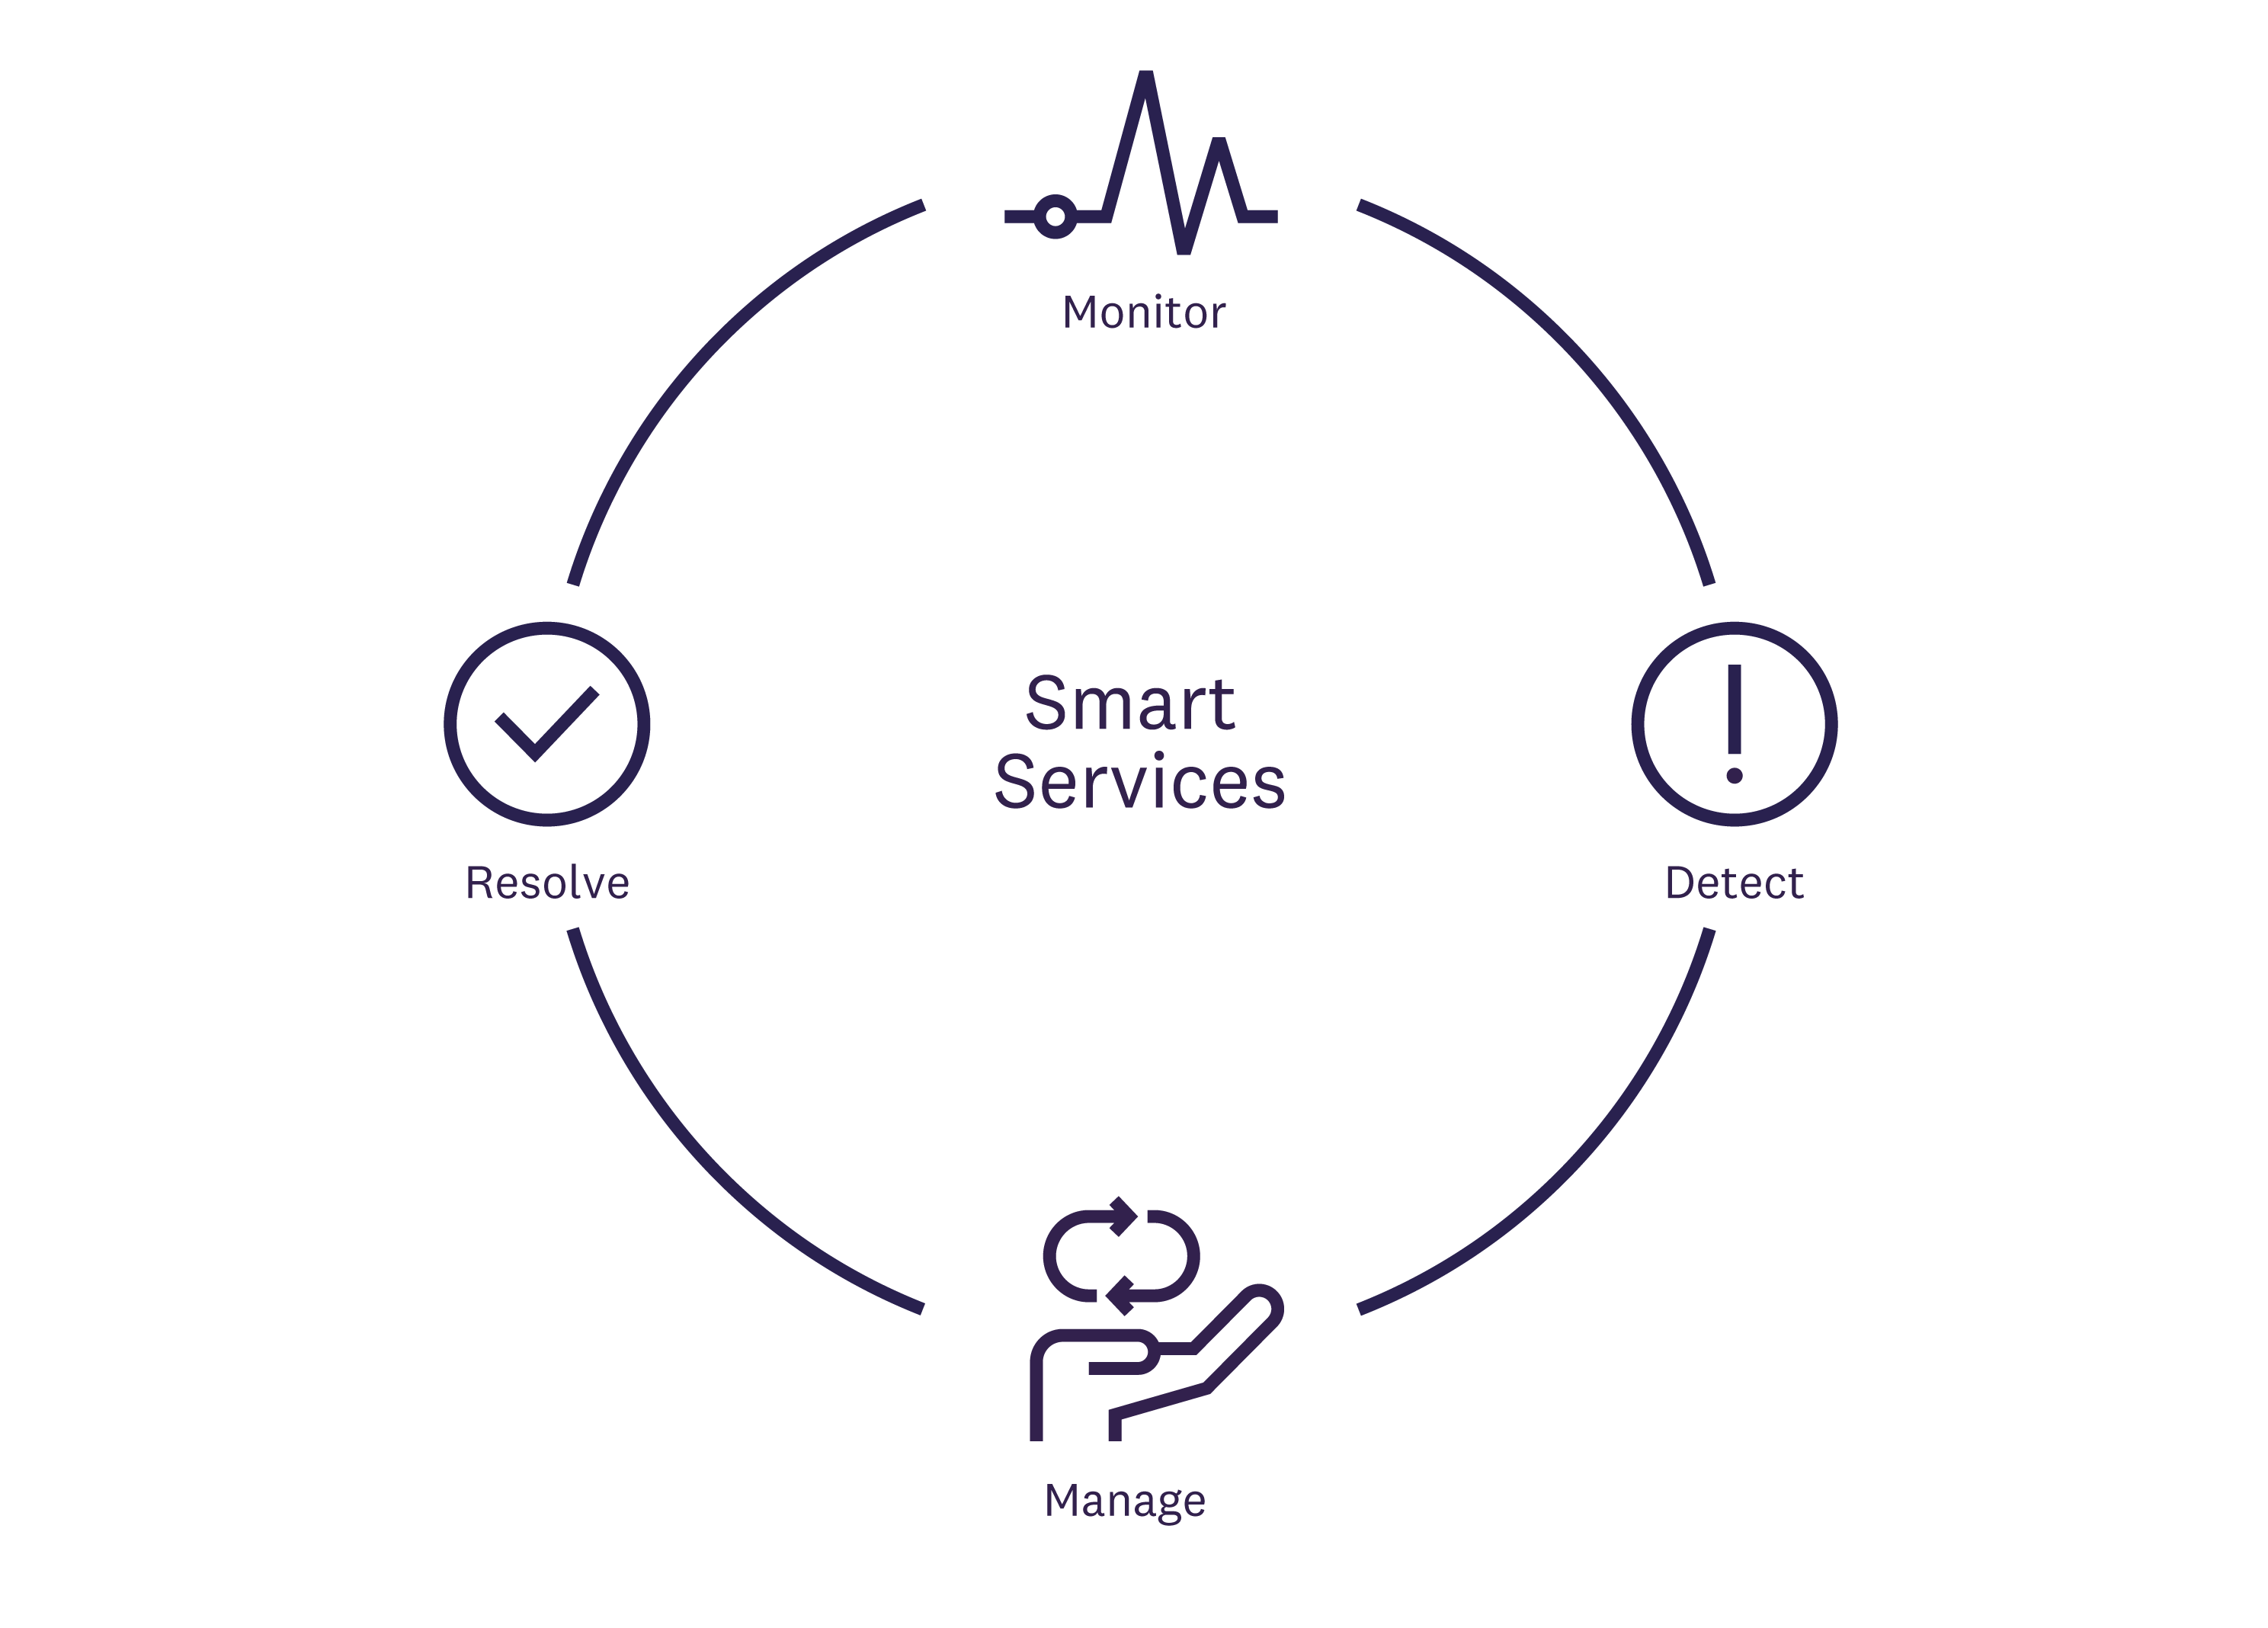 Smart Monitoring provides business intelligence and operational insight